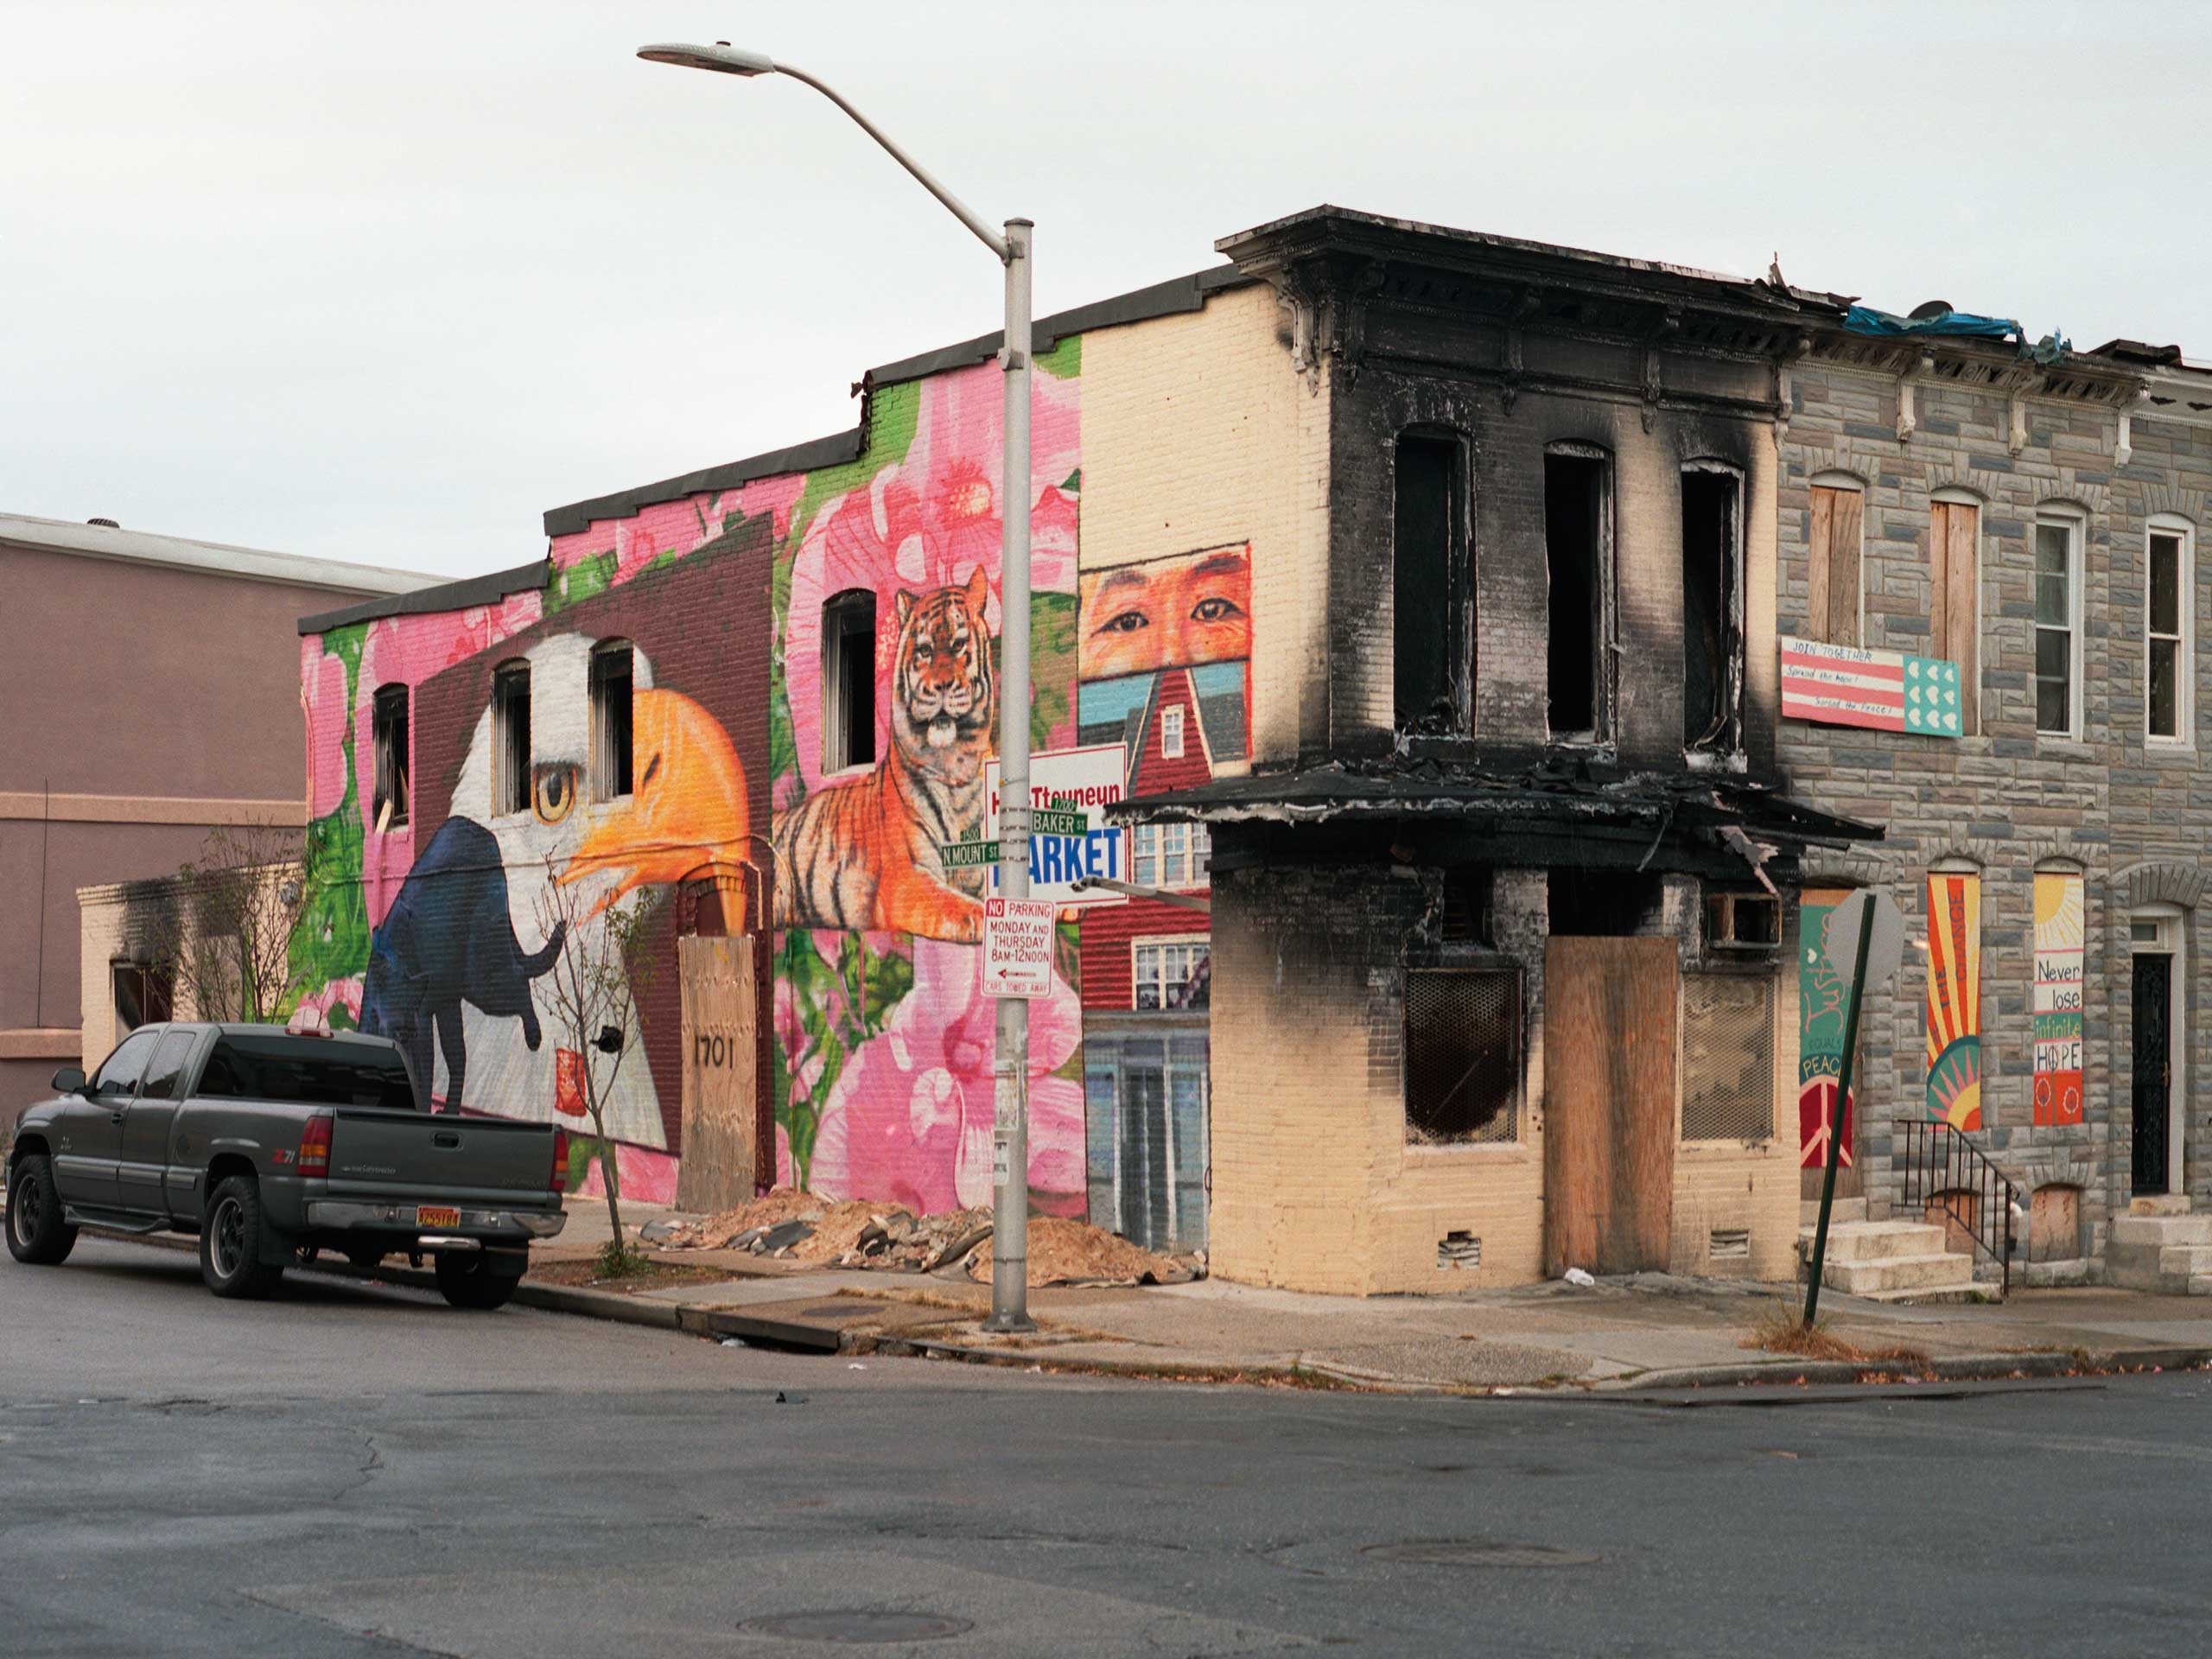 Grace Lyo's Hae-Tteuneun Market, a corner grocery store located at Baker Street and North Mount Street, was torched by rioters on April 27, 2015, in the wake of Freddie Gray's death. Over the course of the protest there was an estimated $9 million in destruction and more than 60 structure fires.